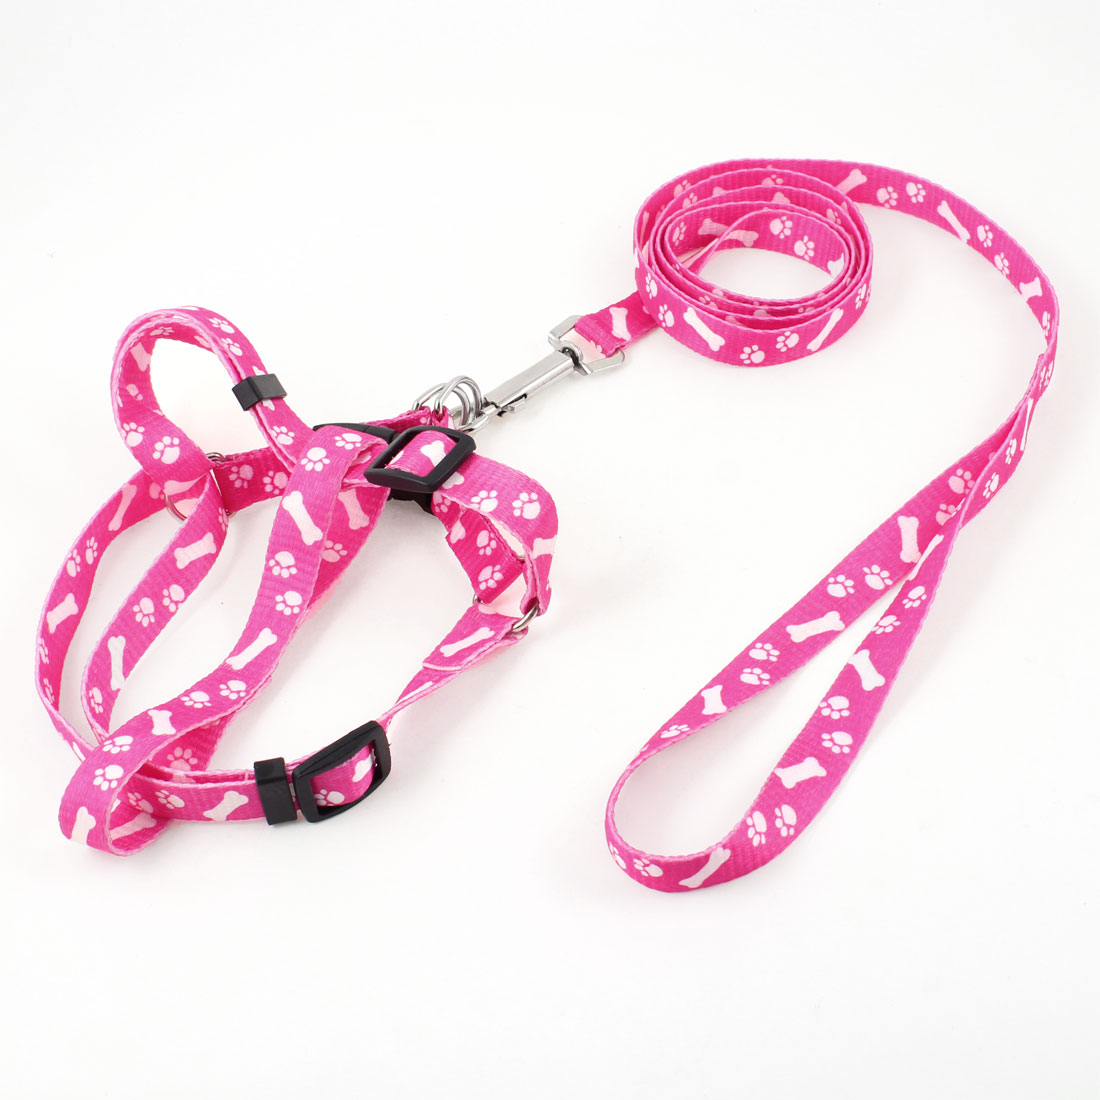 "Pink White Doggie Rope Adjustable Dog Harness Halter Leash Set 59"" Long M"